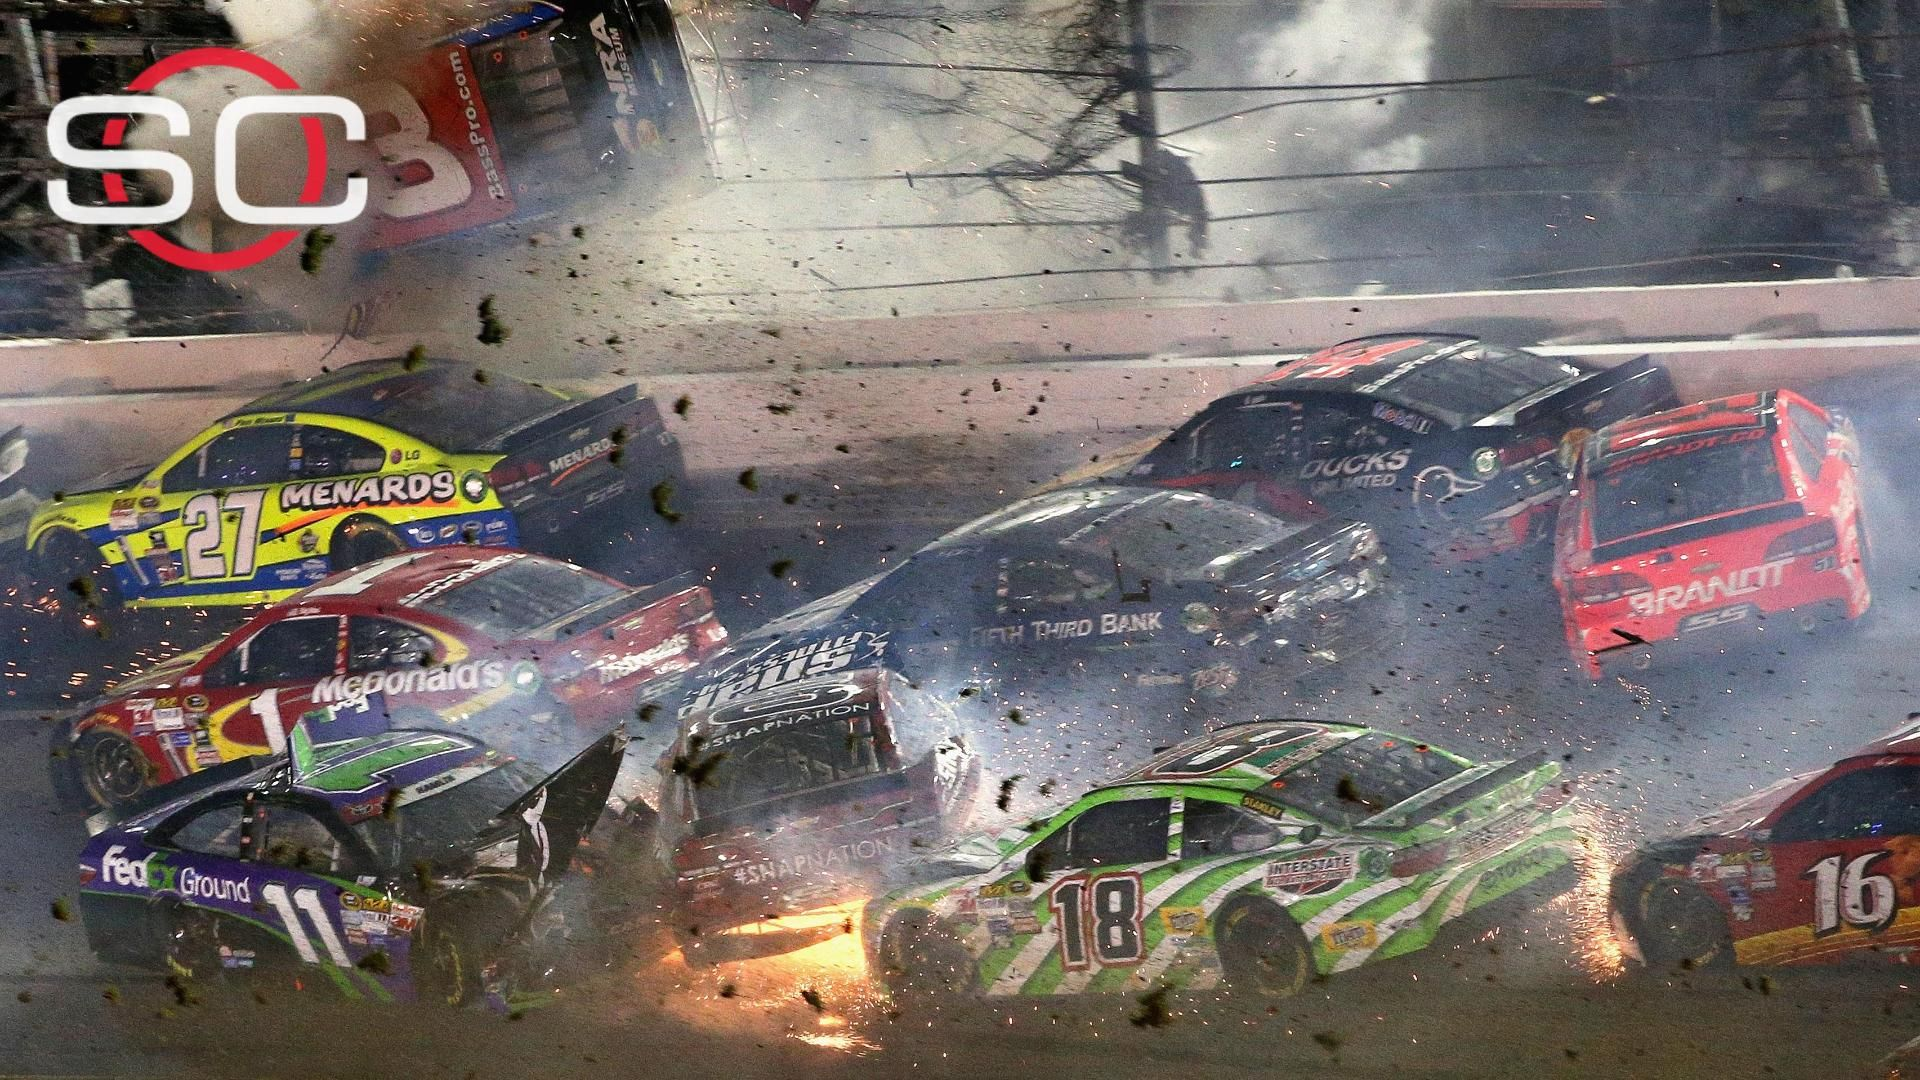 https://secure.espncdn.com/combiner/i?img=/media/motion/2015/0706/dm_150706_SC_Ricky_Craven_Daytona_analysis830/dm_150706_SC_Ricky_Craven_Daytona_analysis830.jpg